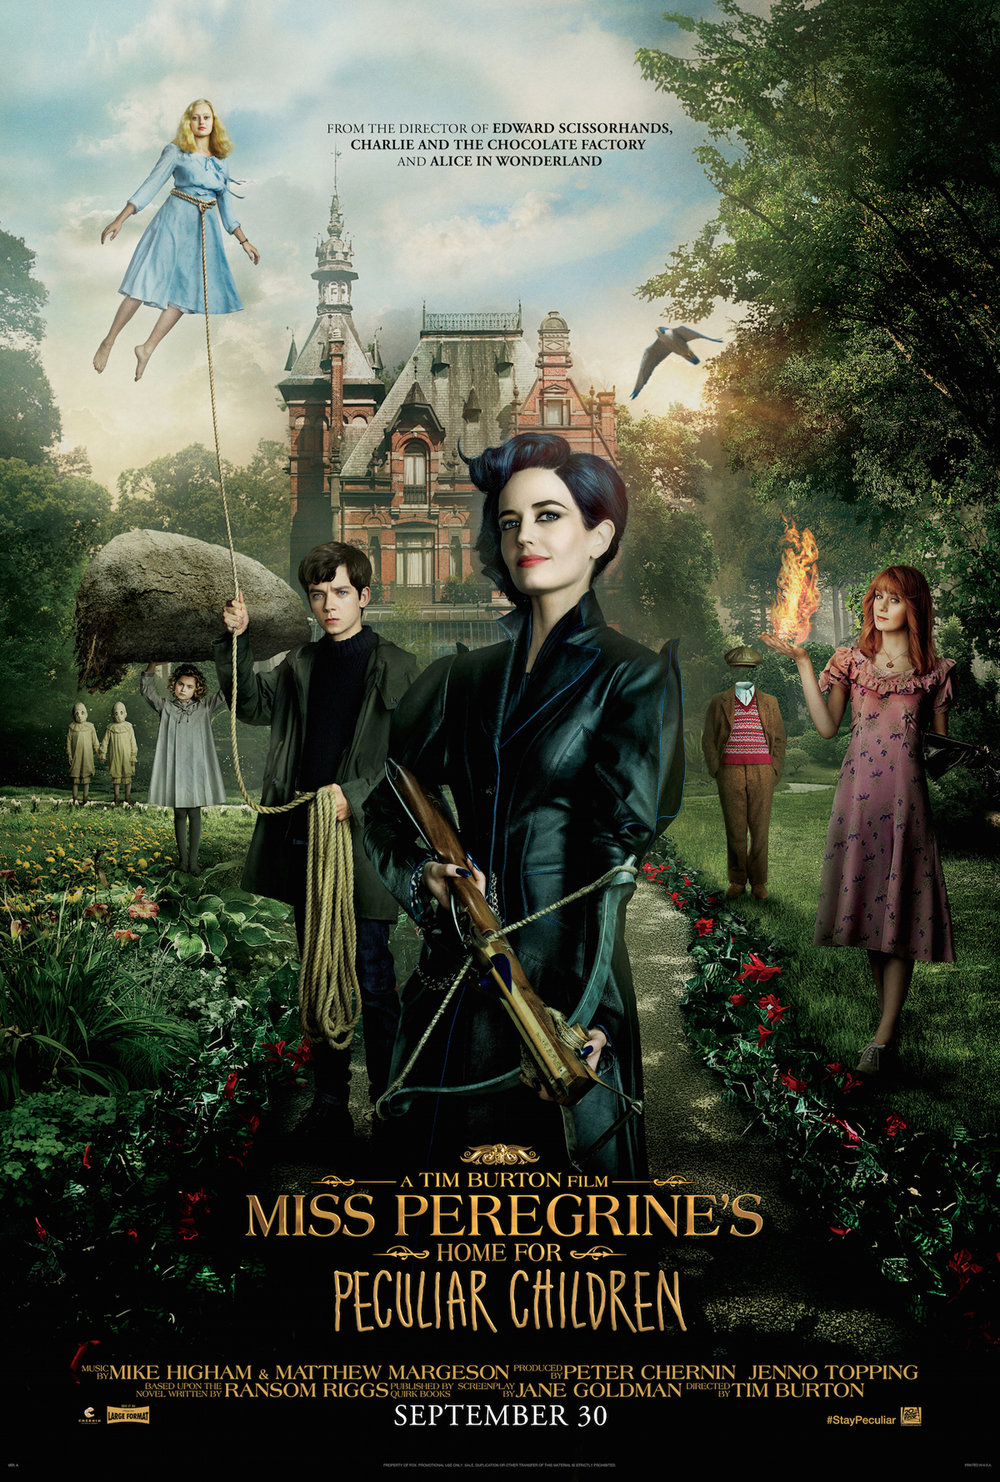 MISS-PEREGRINES-HOME-FOR-PECULIAR-CHILDREN.jpg